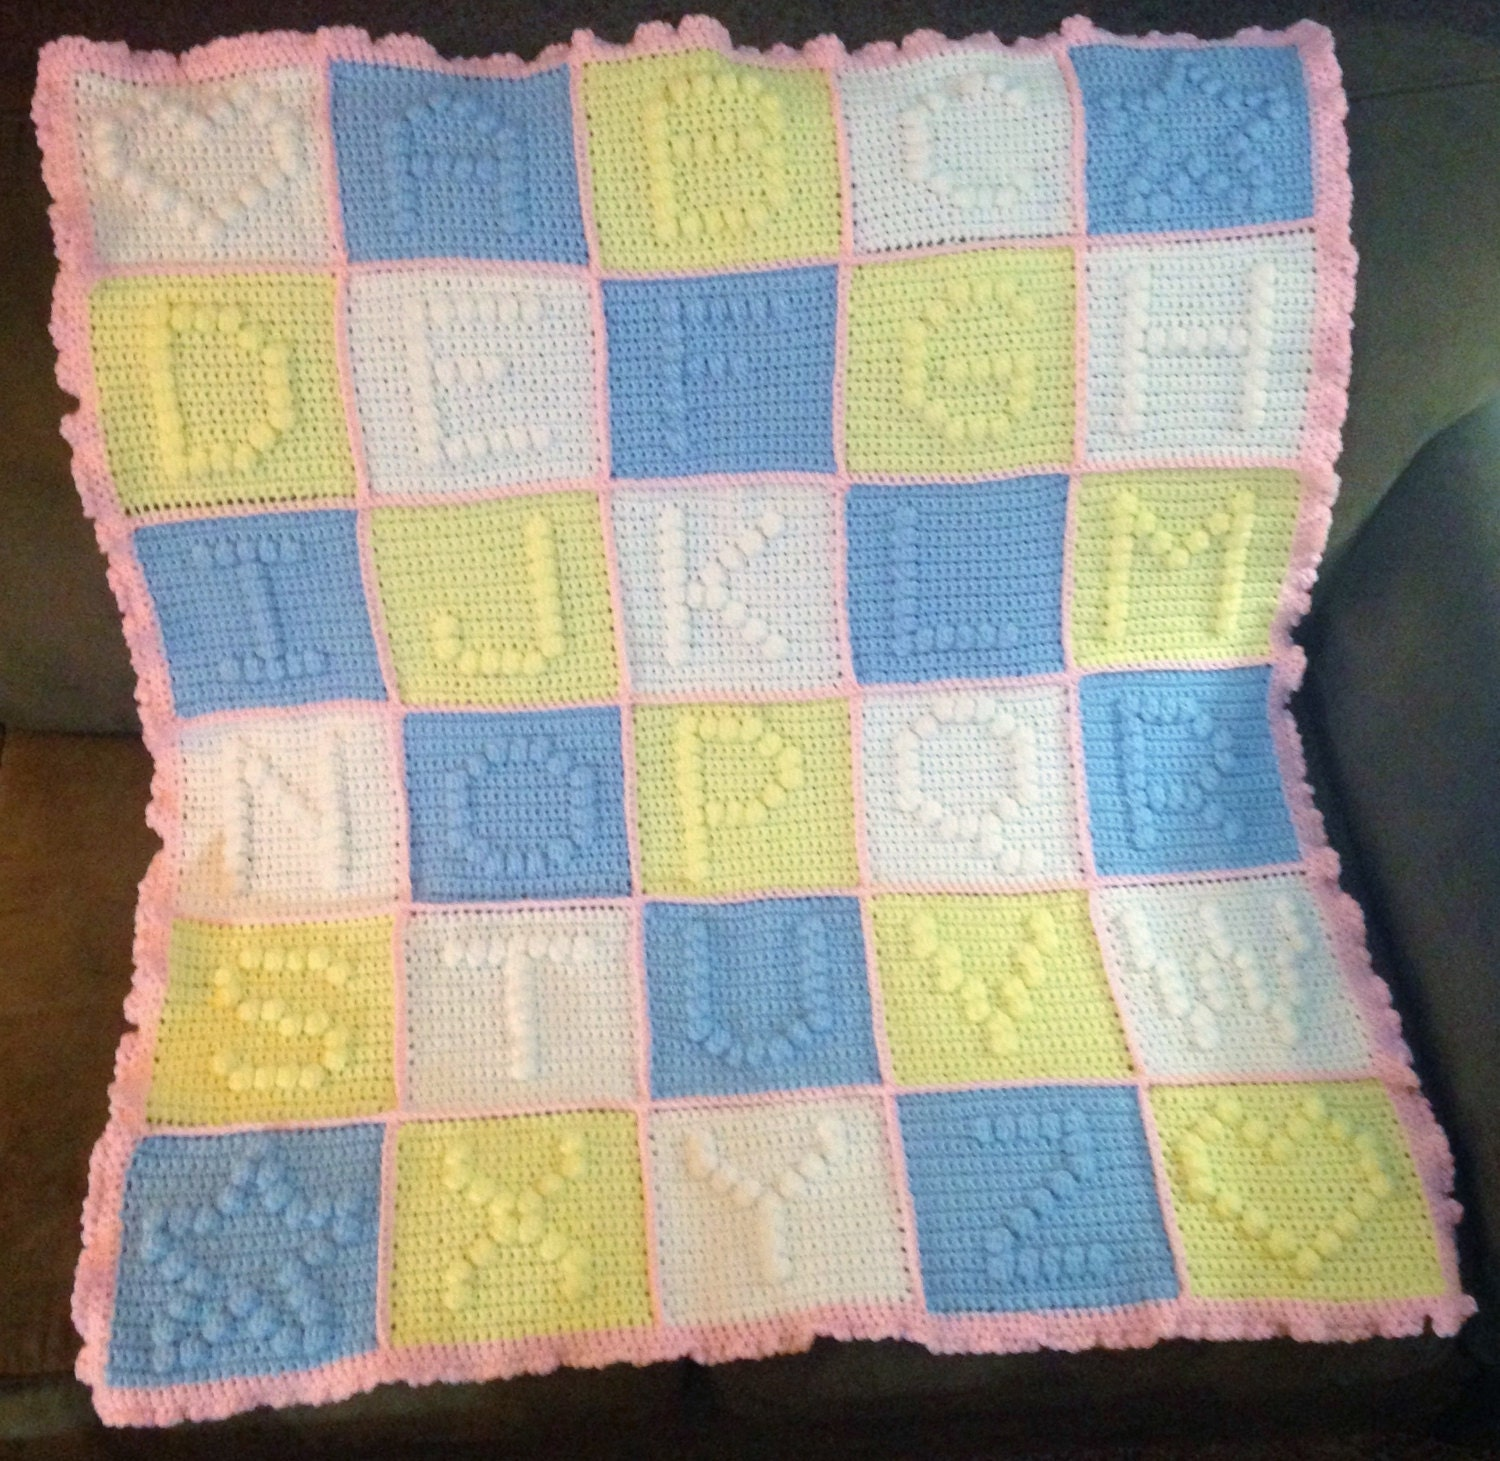 Crochet Pattern For Abc Baby Blanket : Alphabet Baby Blanket // Crochet ABC Blanket // by HMKHandmade